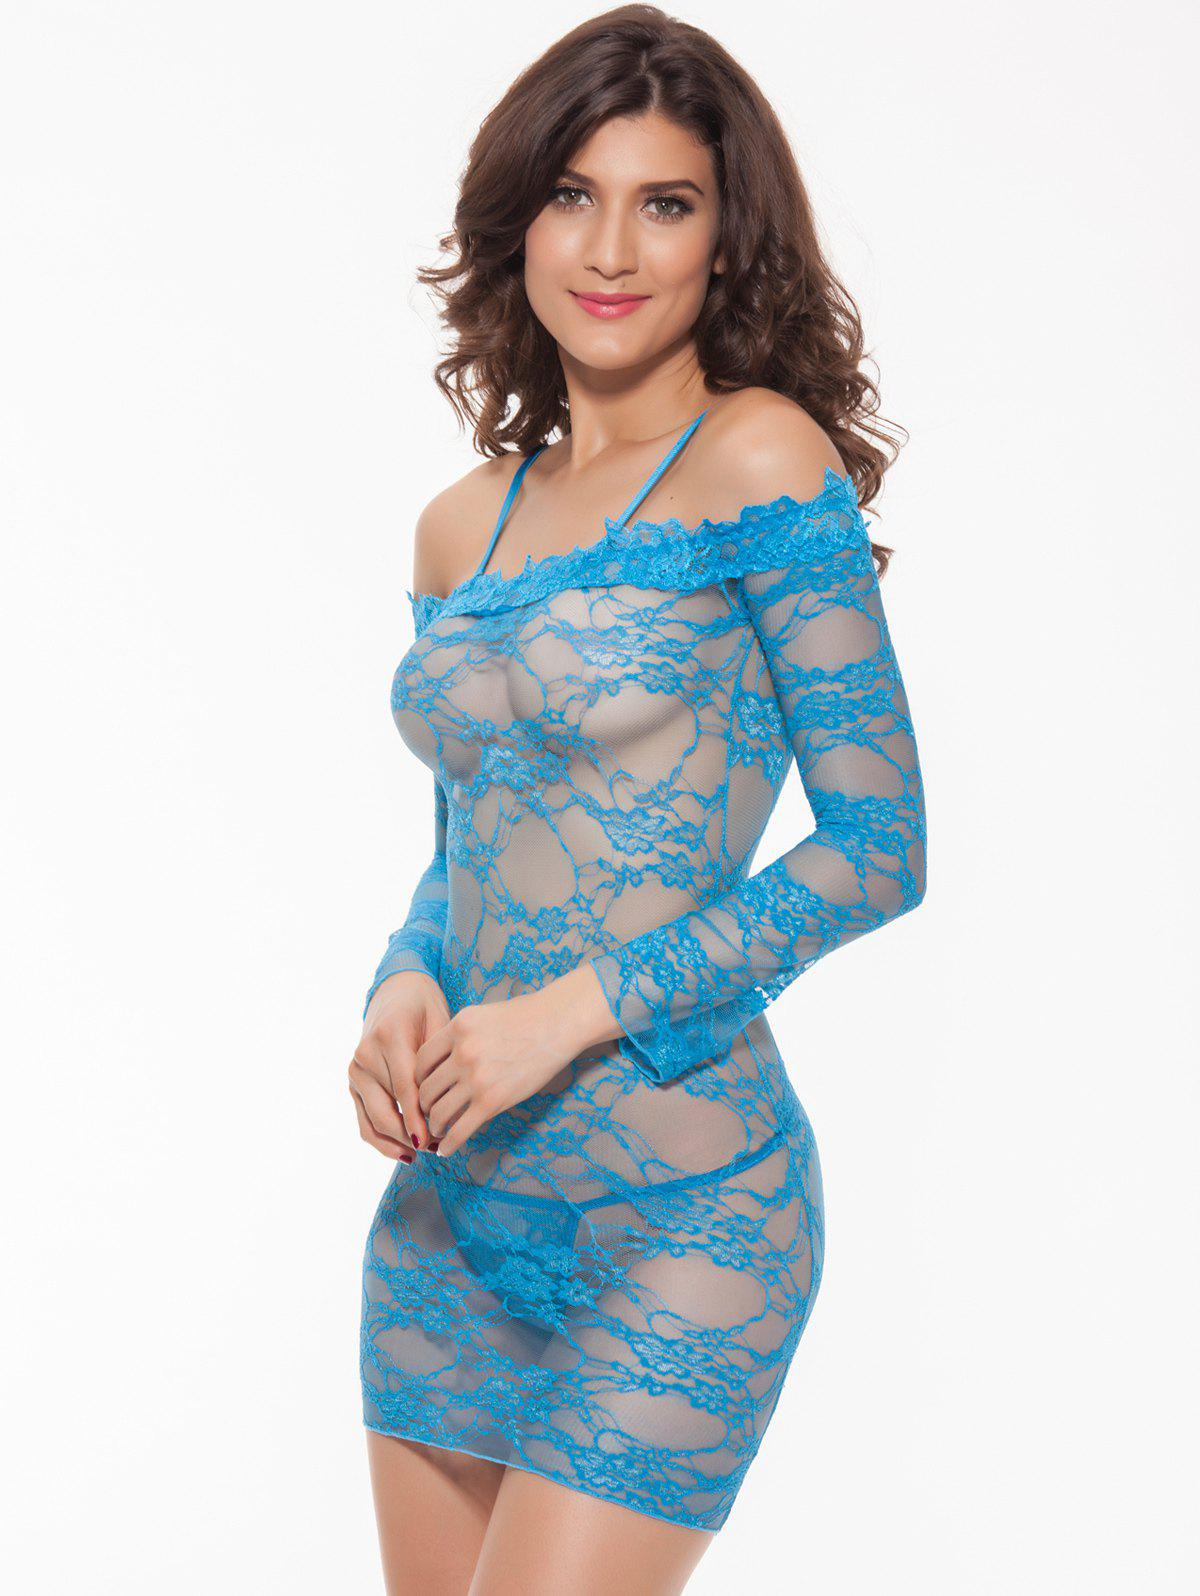 Alluring Women's Off-The-Shoulder Lace Babydoll, LIGHT BLUE, XL in ...